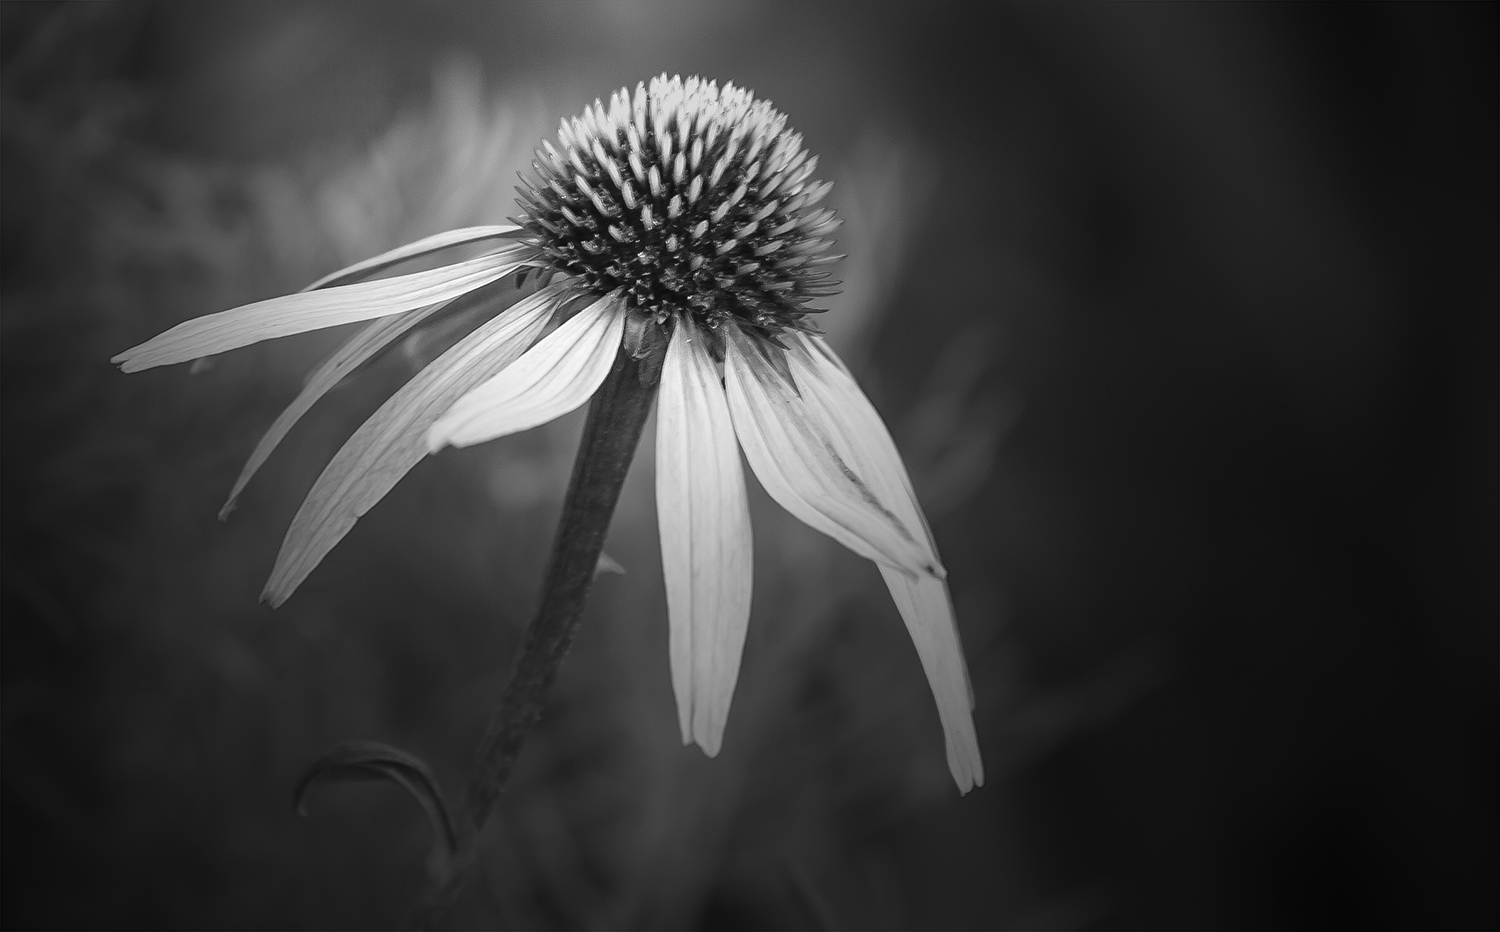 Flowers in Black and White   Annette Schreiber   Fine Art Photography echinacea 2 by annette schreiber